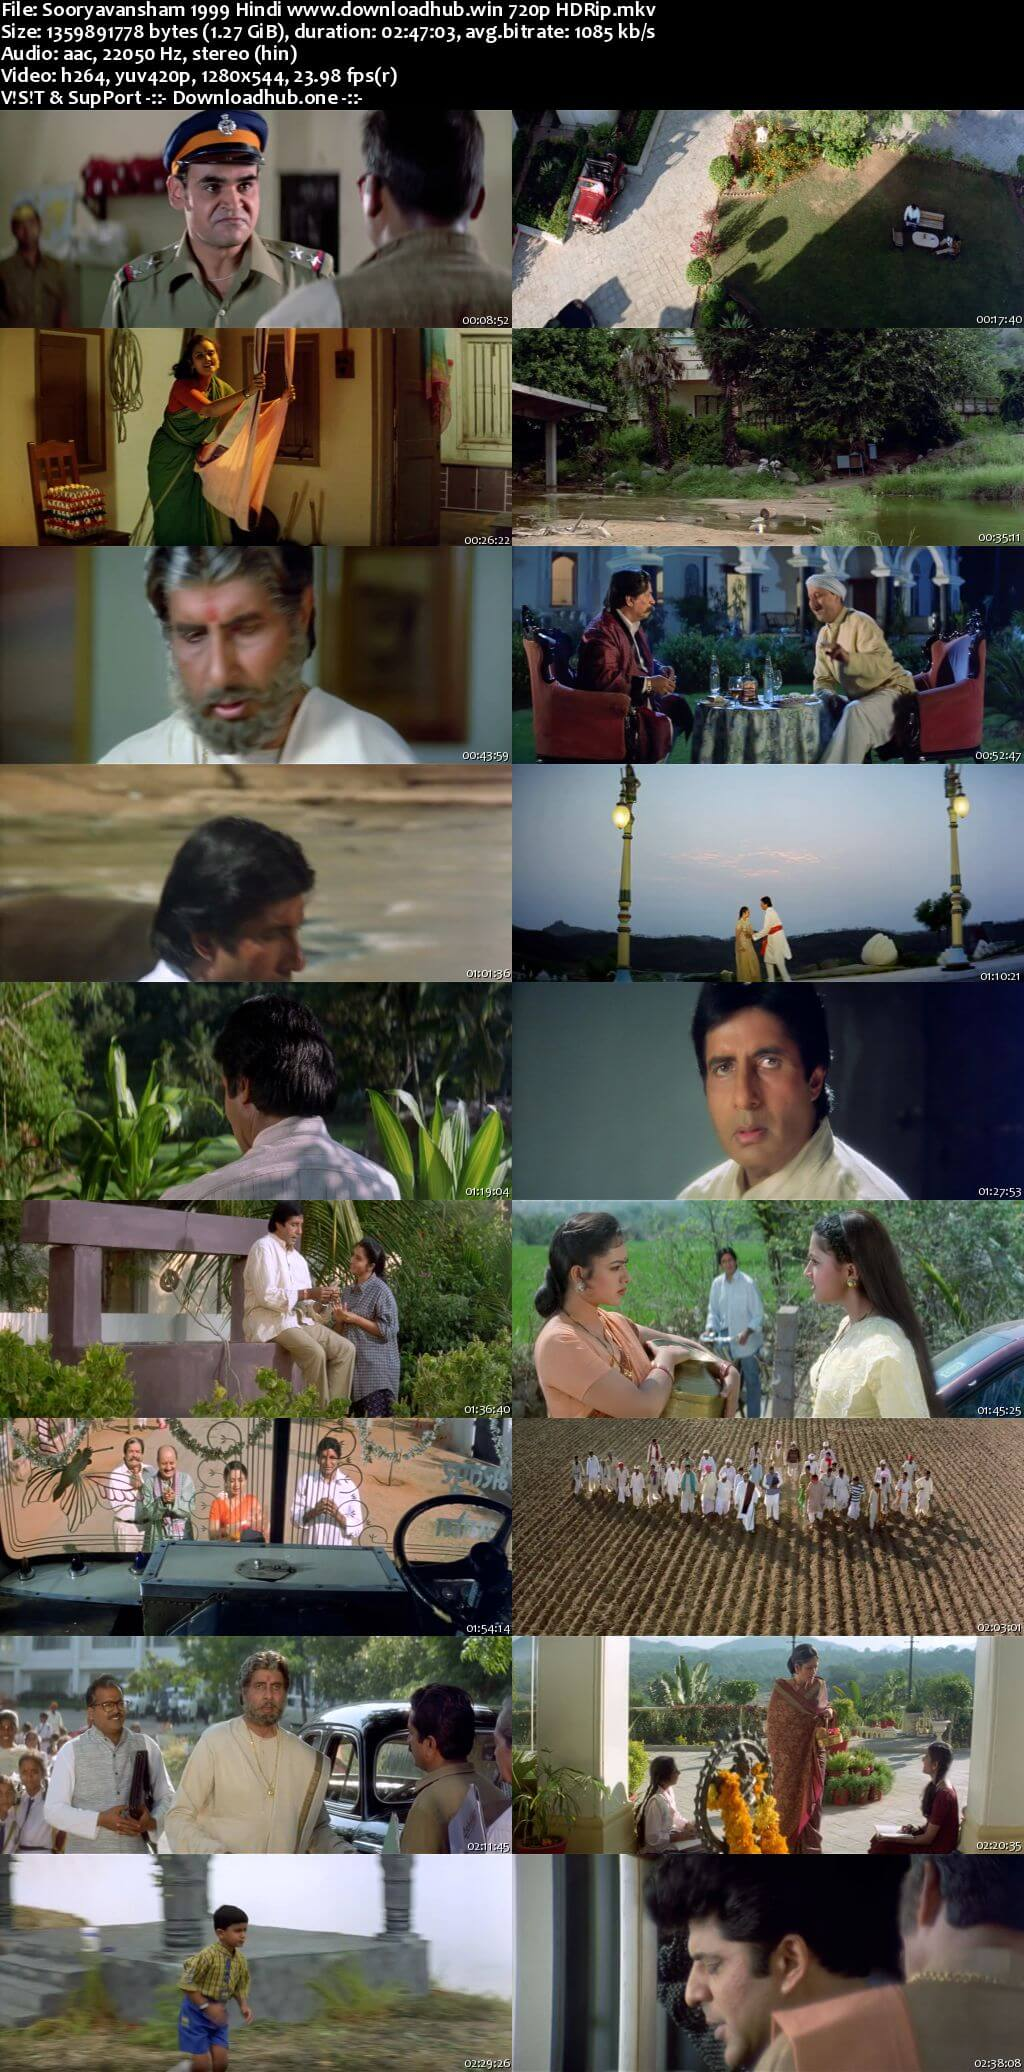 Sooryavansham 1999 Hindi 720p HDRip x264